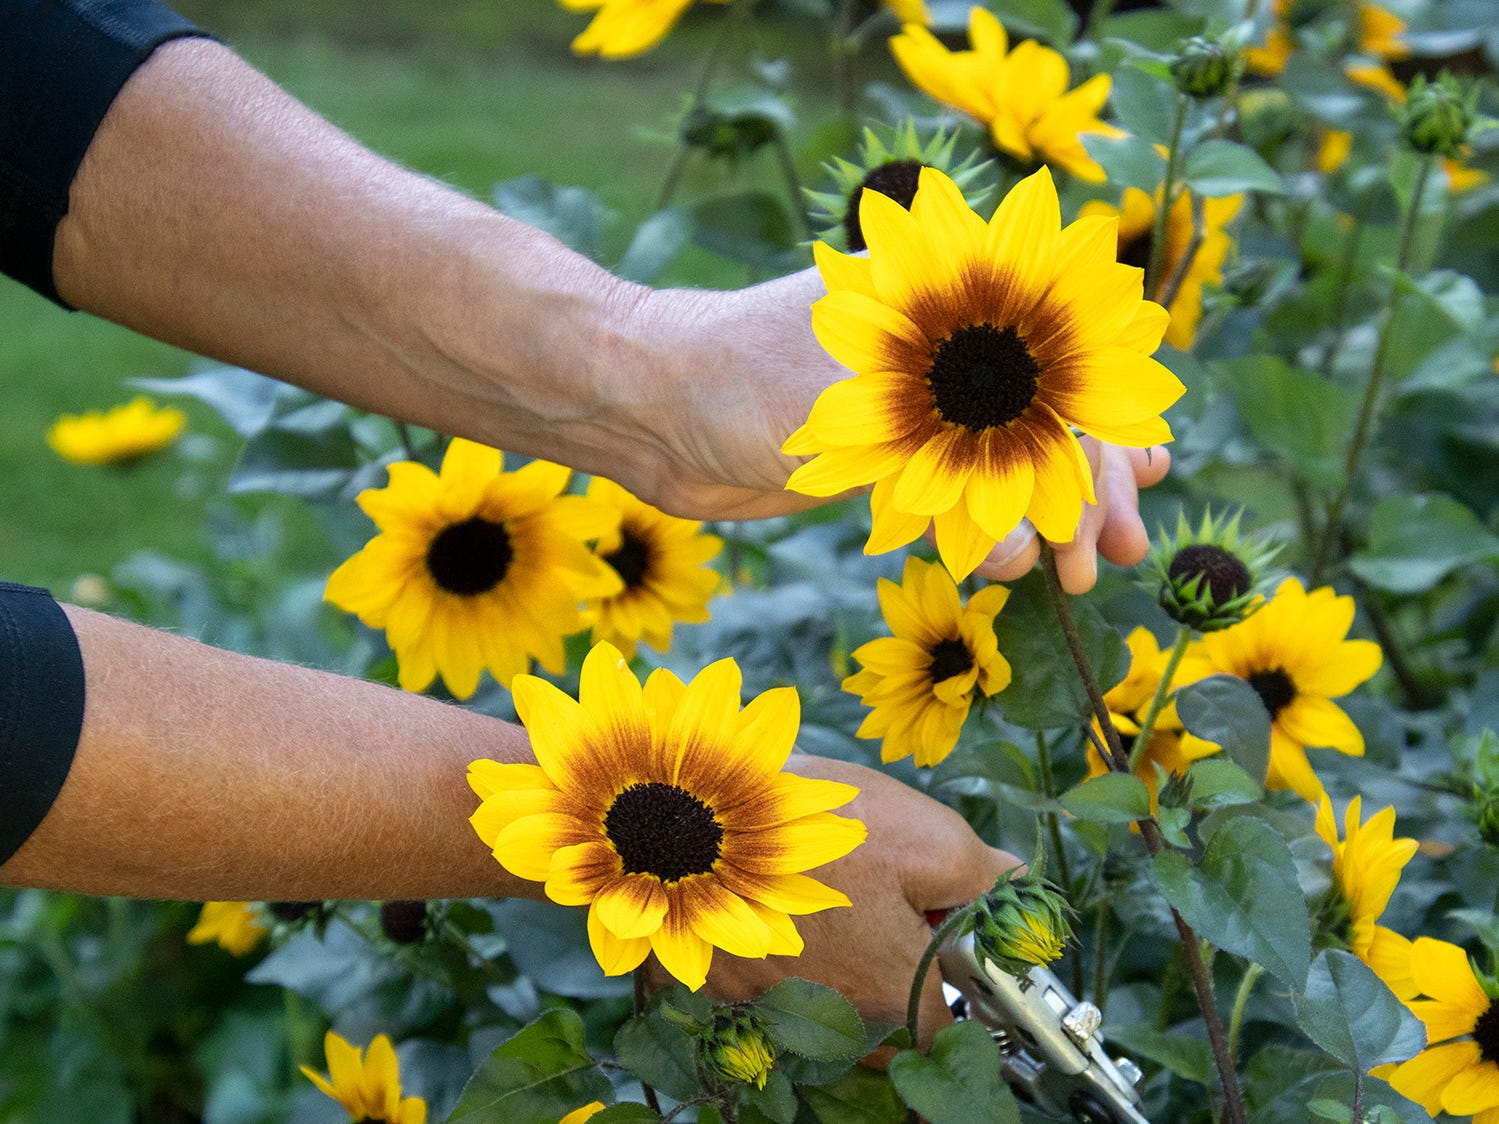 Sunbelievable Brown Eyed Girl is an annual sunflower that doesn't produce seeds but instead produces lots of flowers.